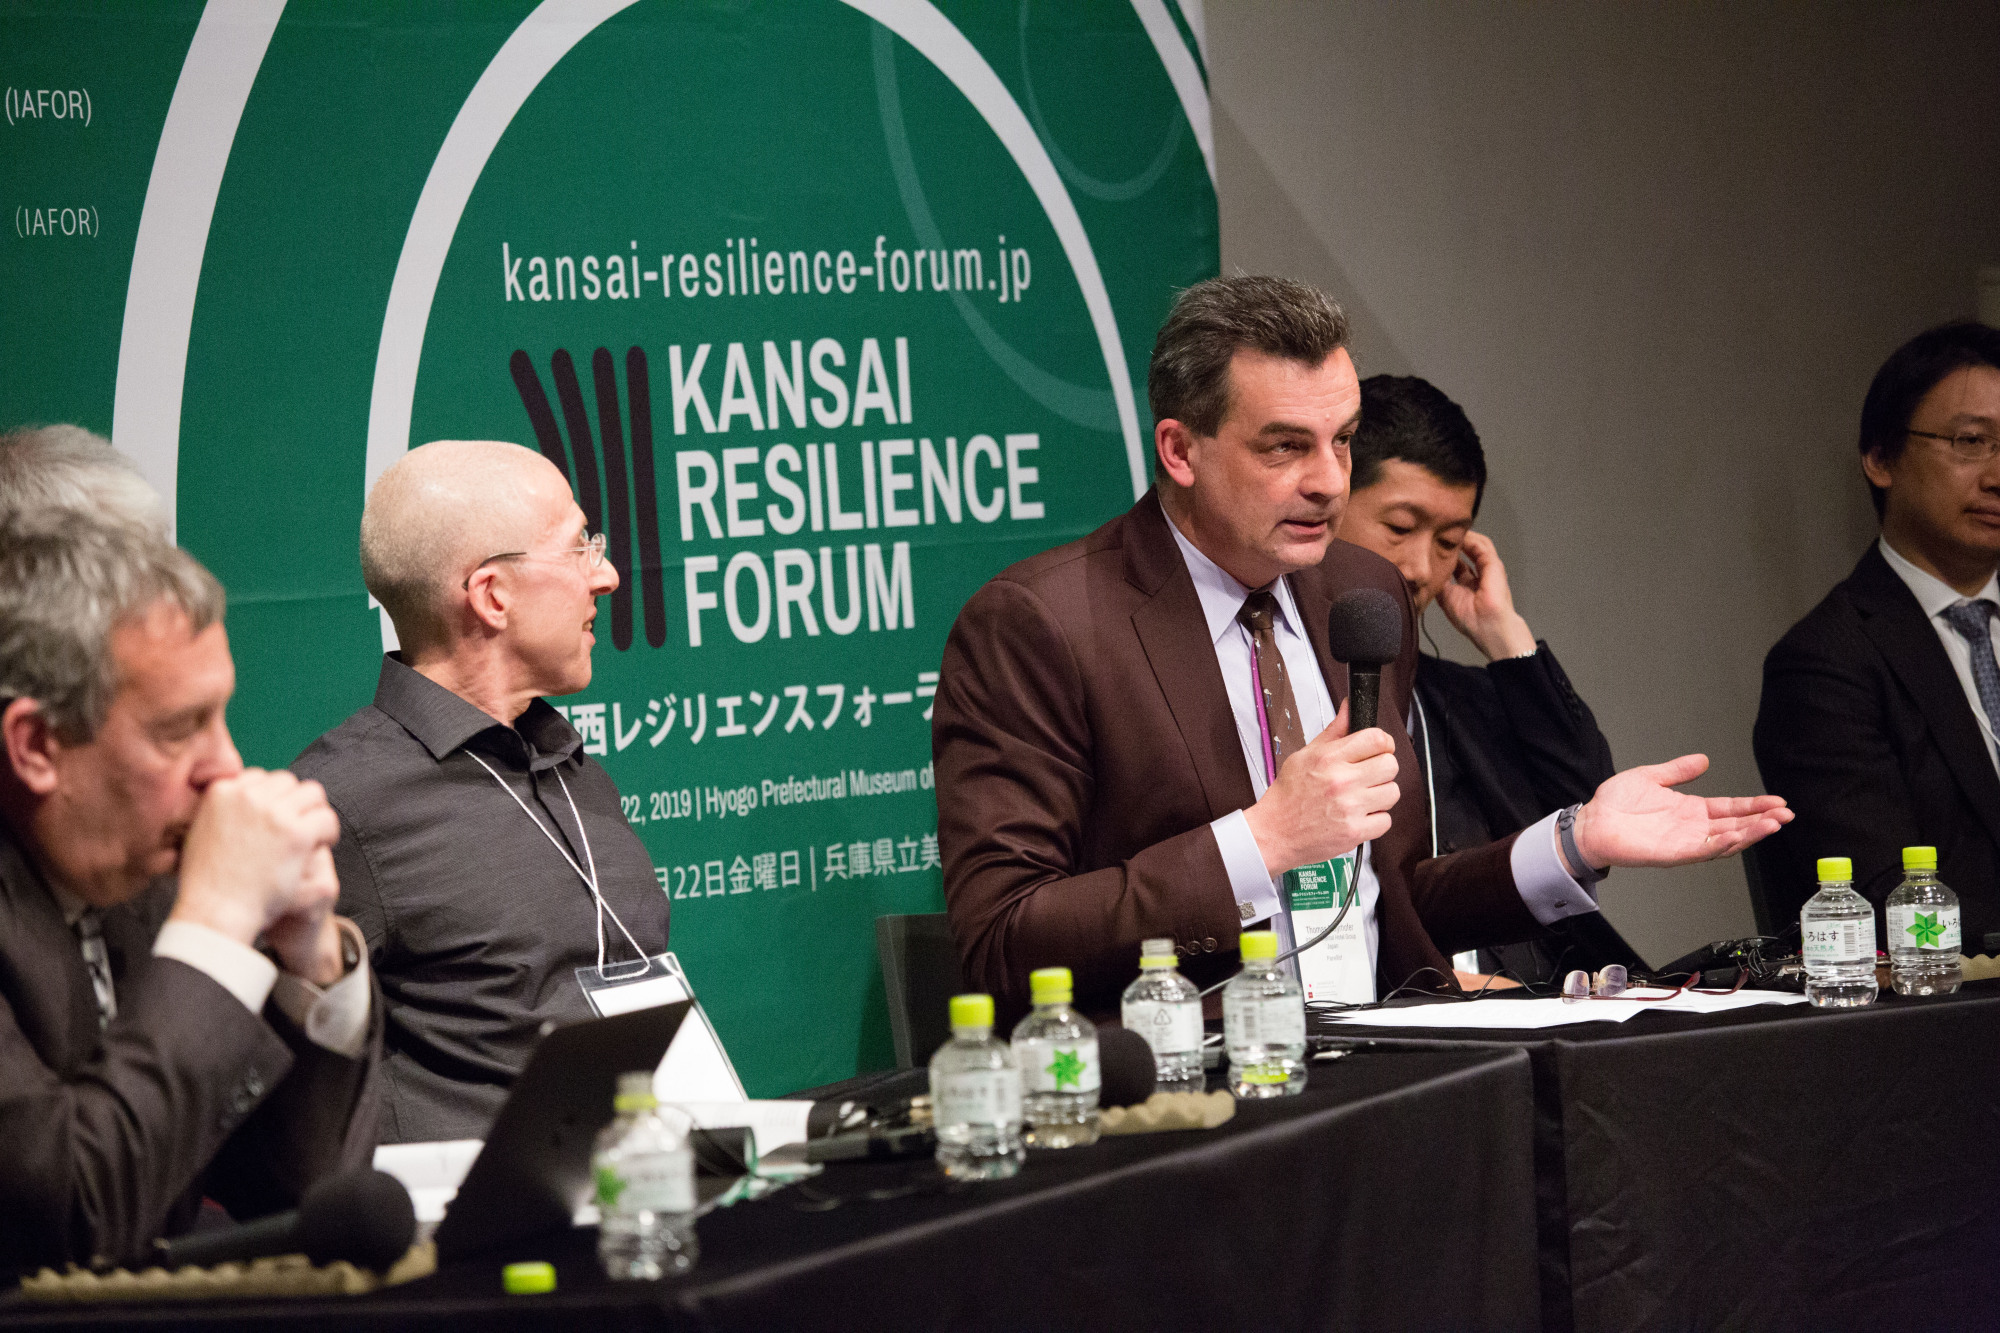 Thomas Mayrhofer, general manager of ANA Crowne Plaza Osaka, speaks at the Kansai Resilience Forum, an event organized last week by the government in collaboration with the International Academic Forum (IAFOR).   THADDEUS POPE / IAFOR MEDIA